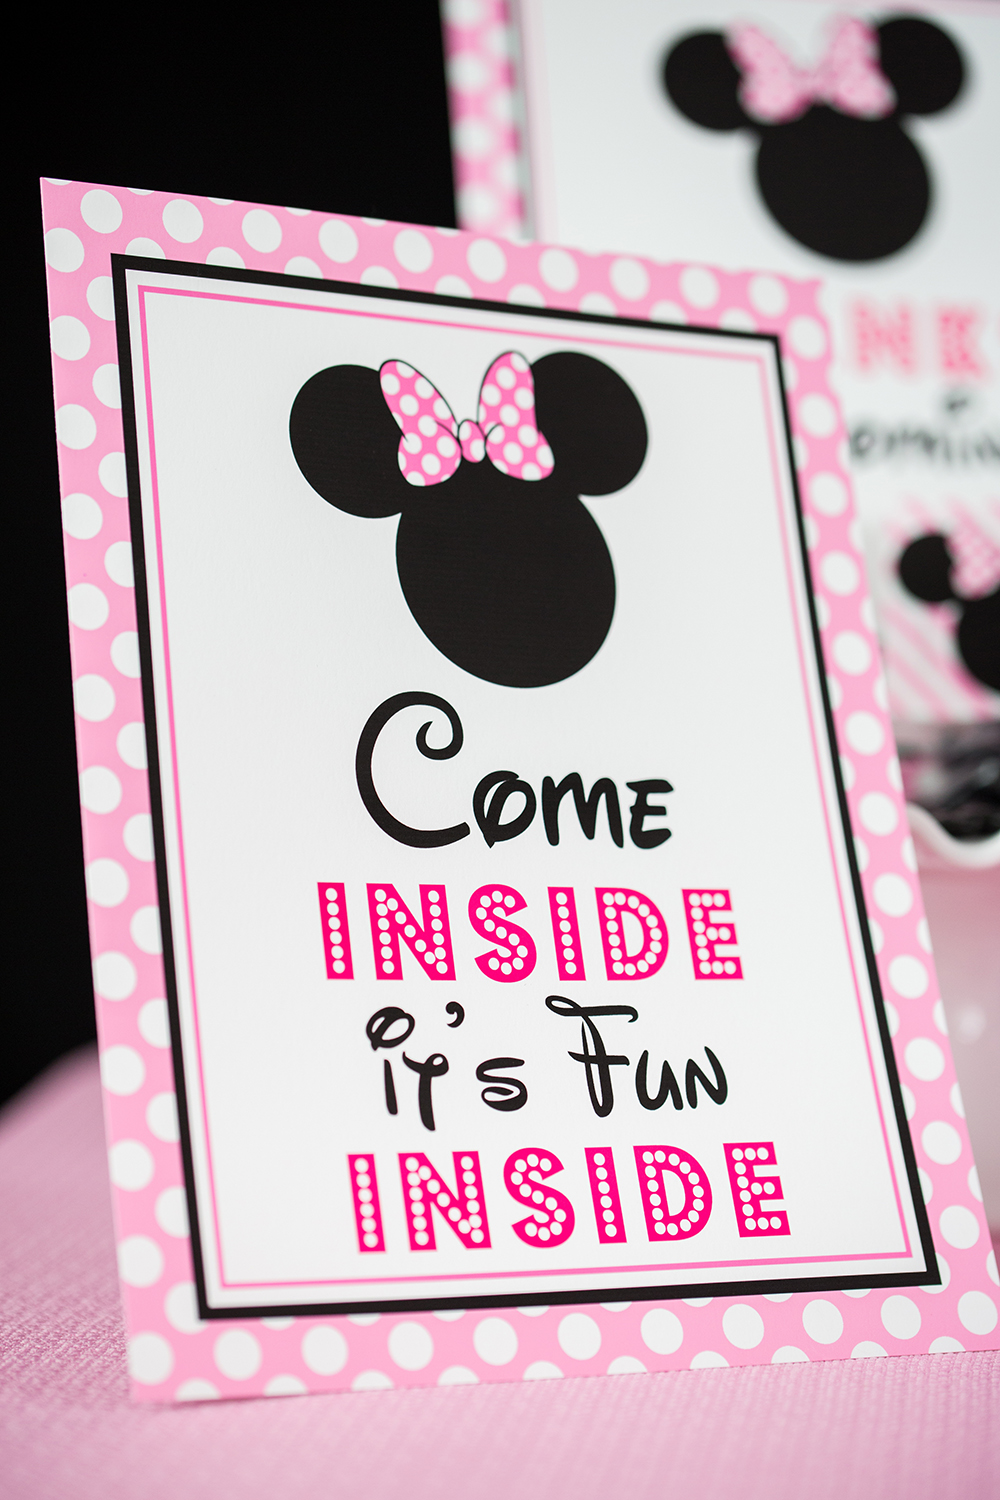 Genius image intended for come inside it's fun inside free printable